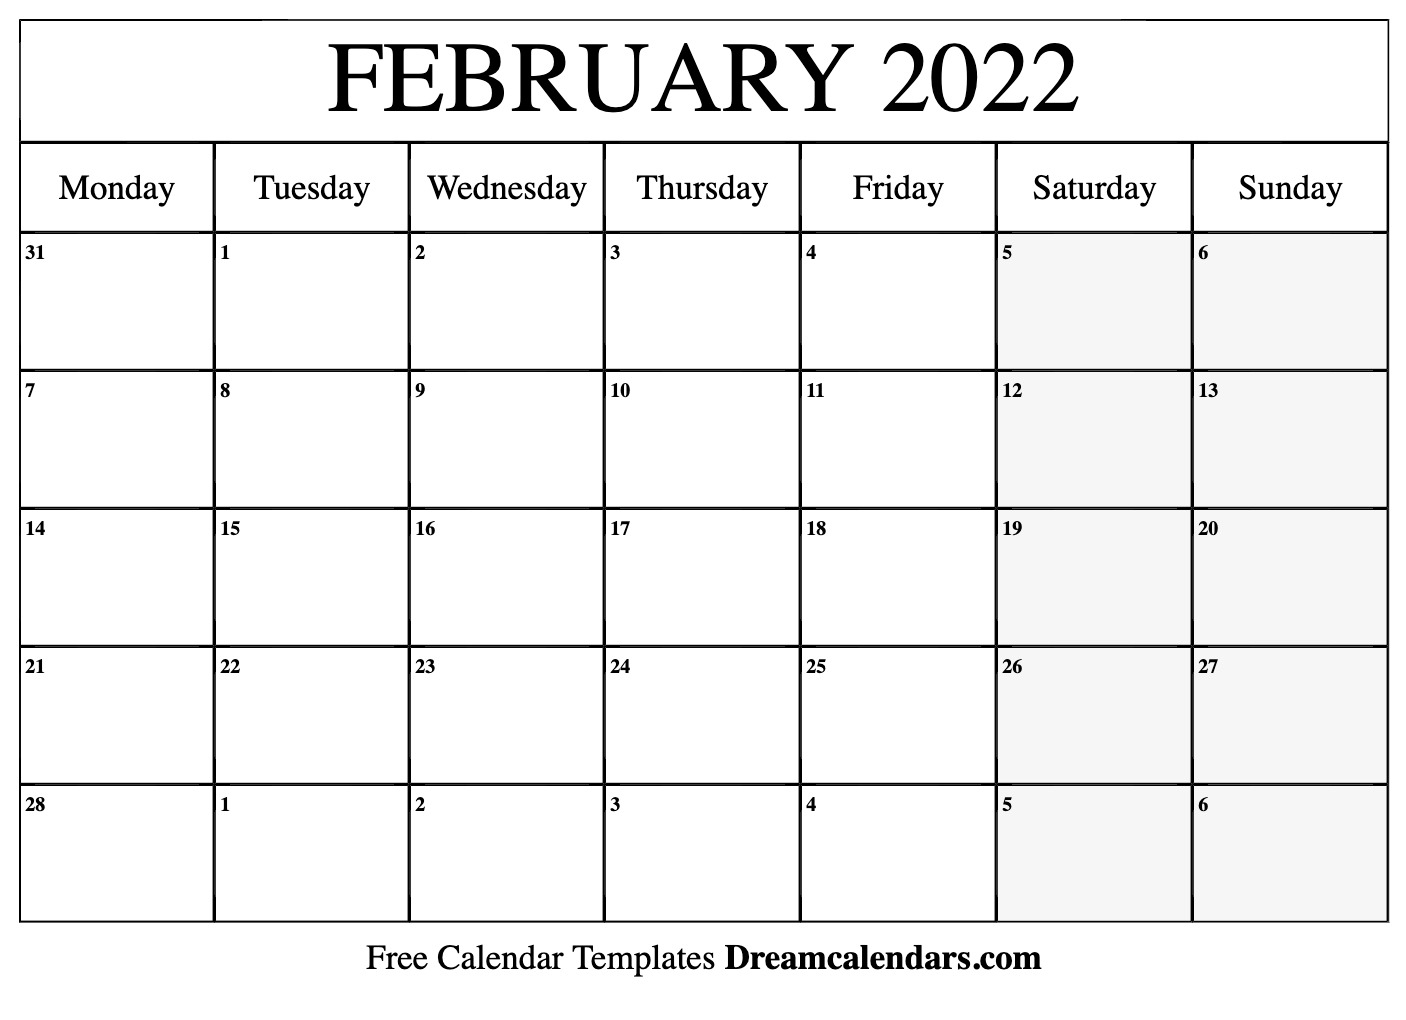 Printable Calendar Sunday Through Saturday | Calendar ...